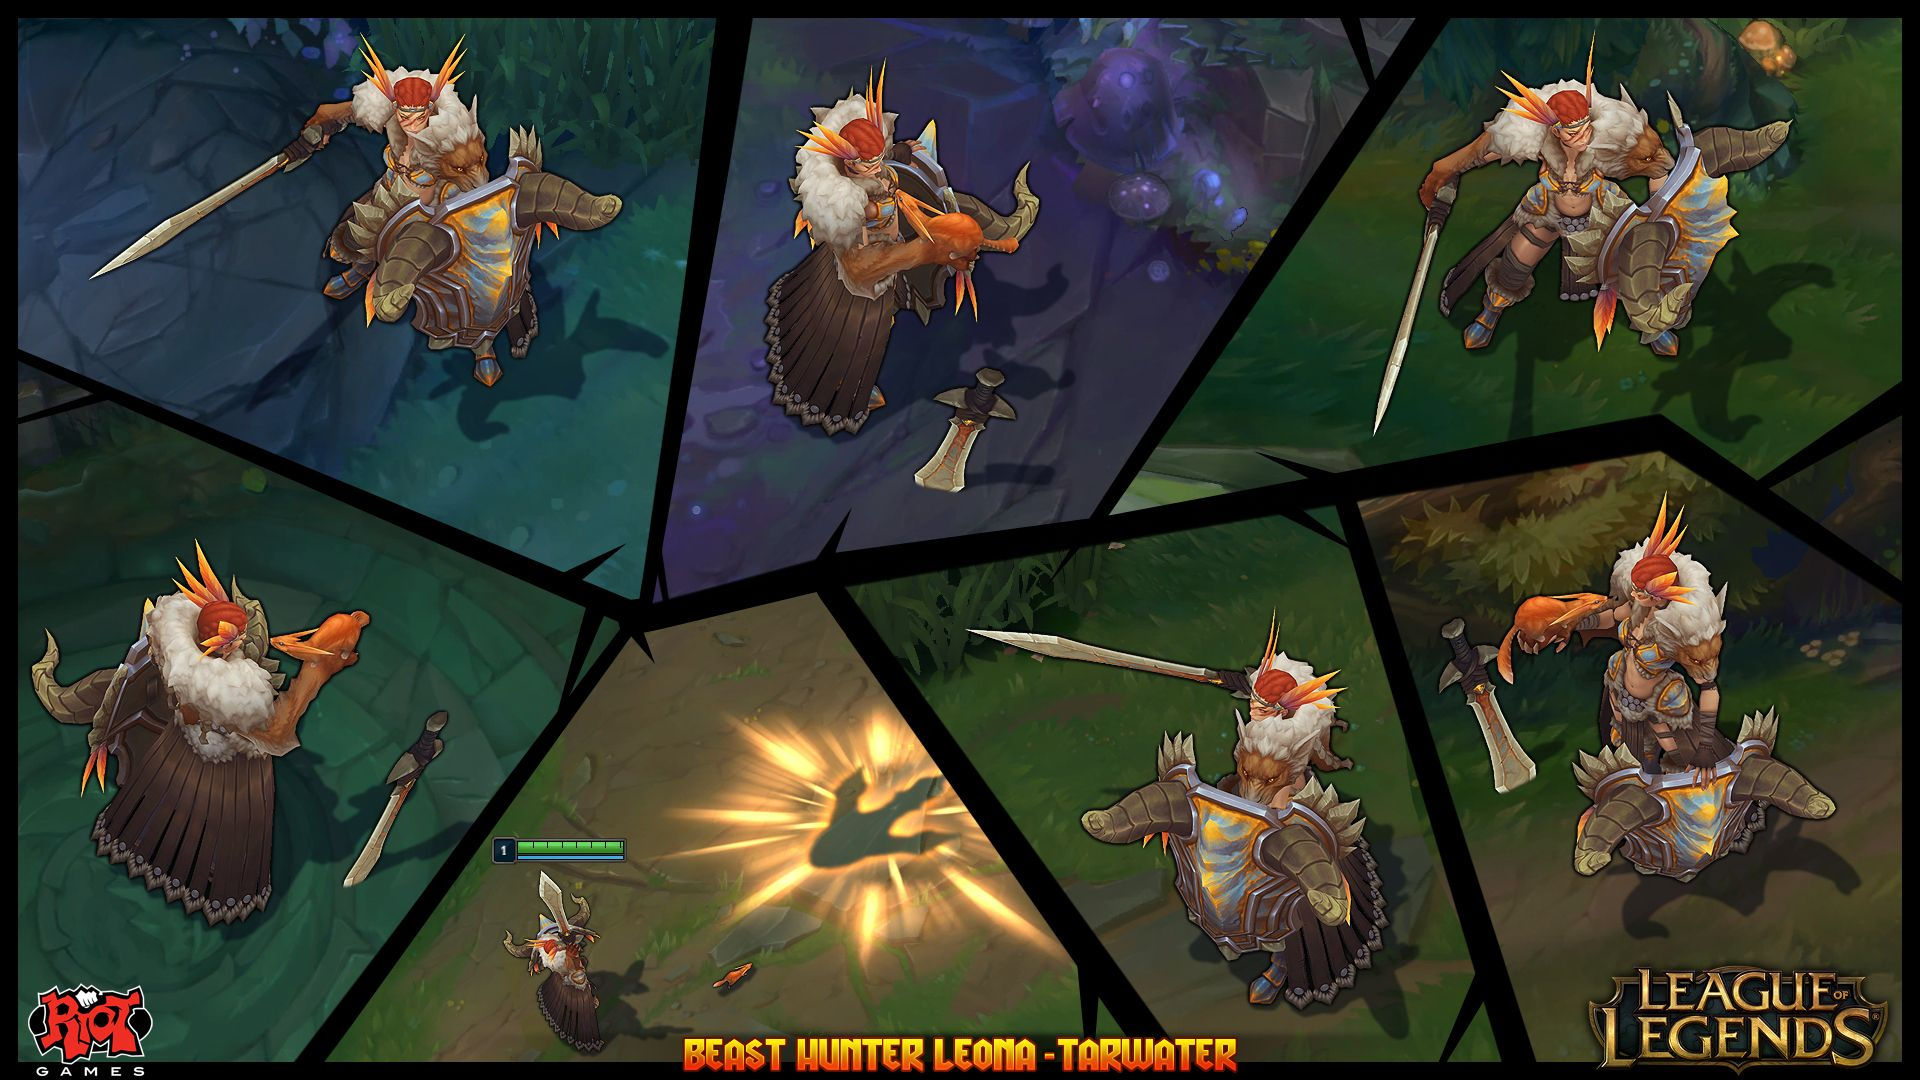 Beast Hunter Leona League Of Legends Skin Concept By Tarwater